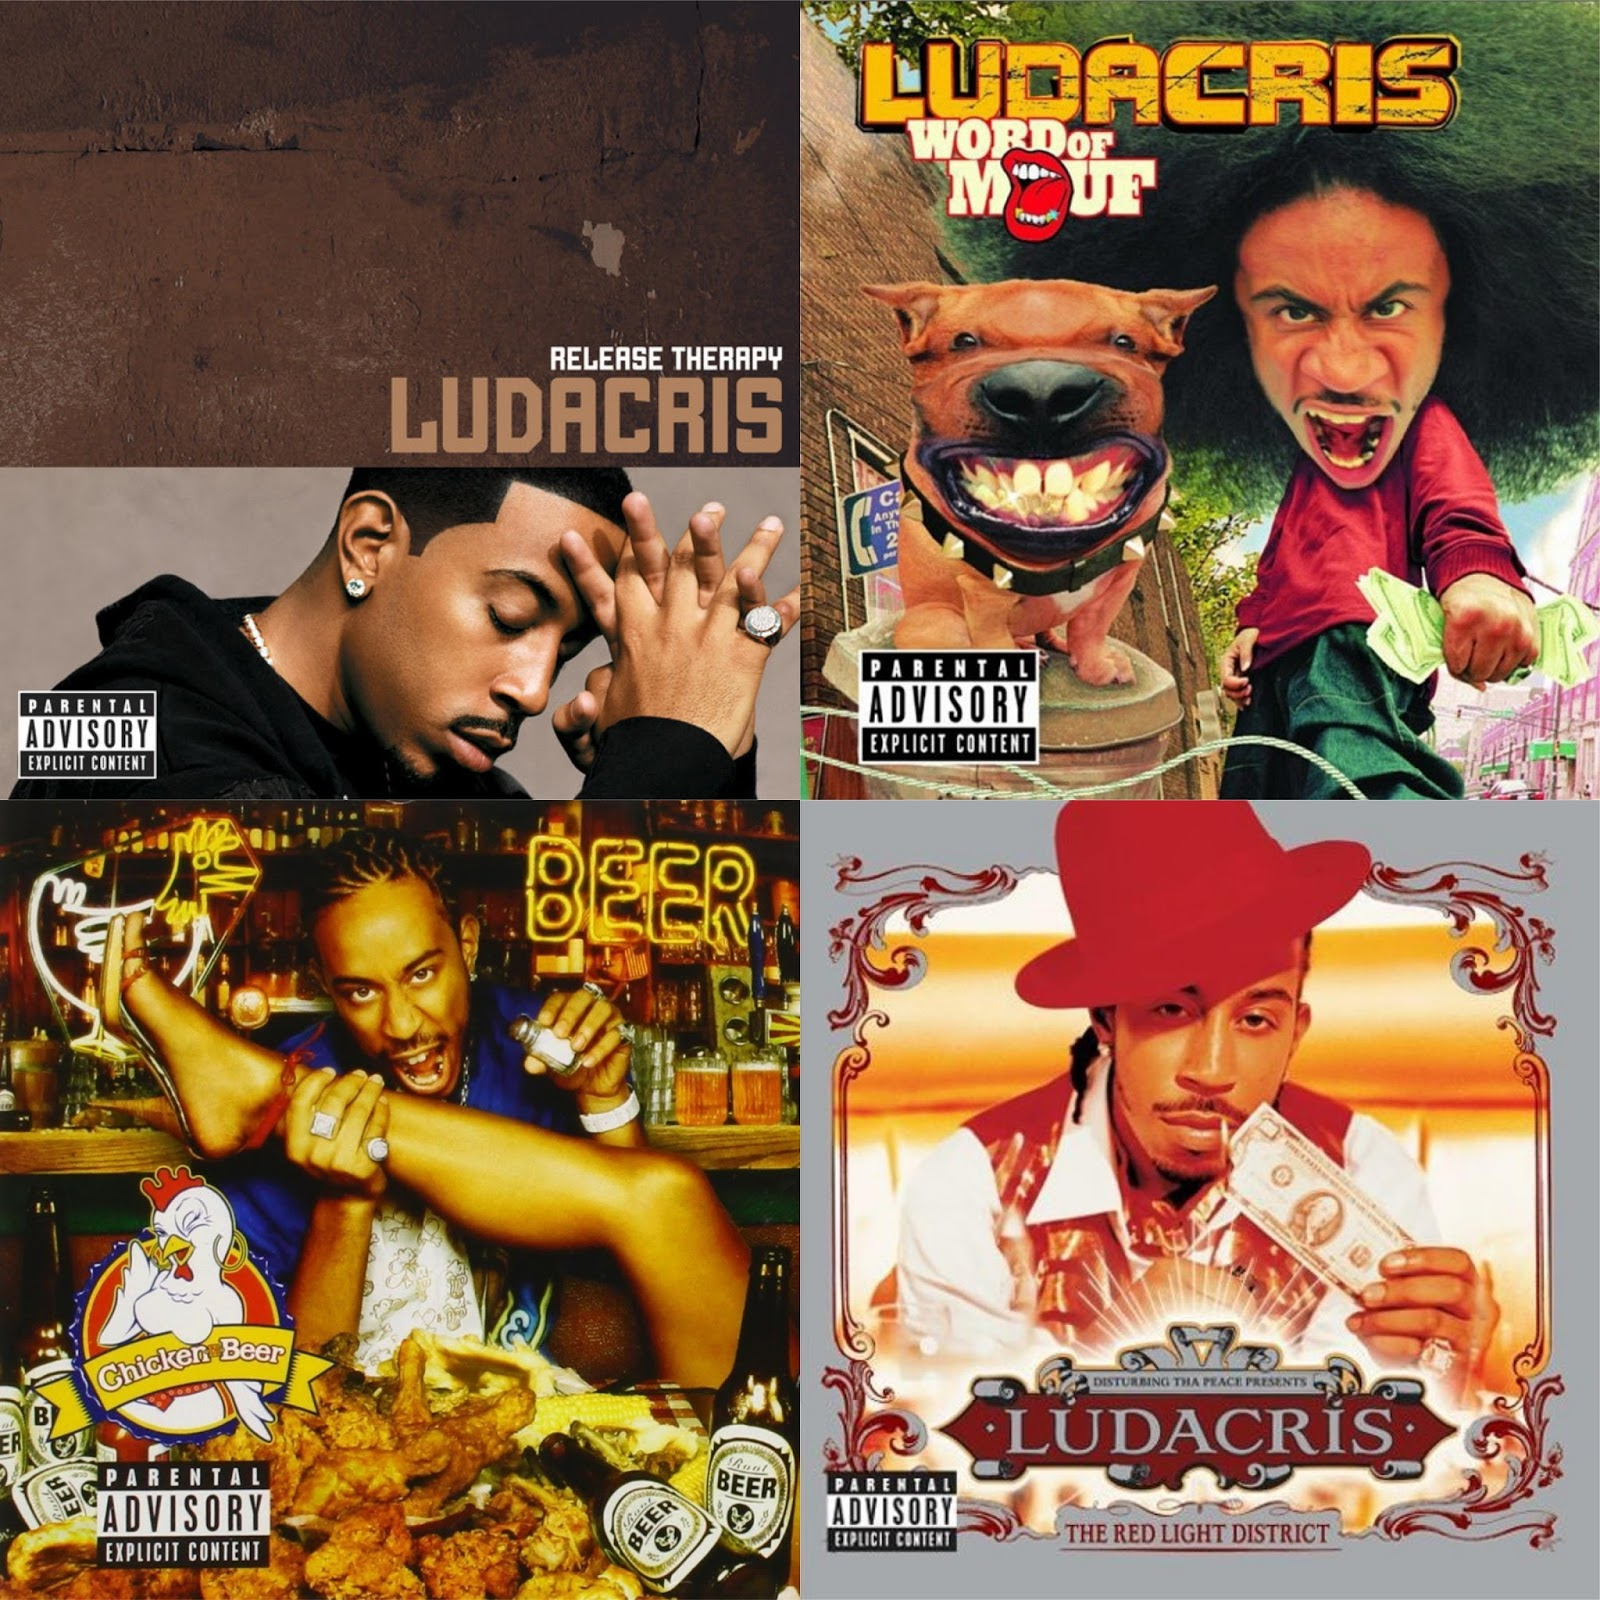 Ludacris and shawnna battle of the sexes